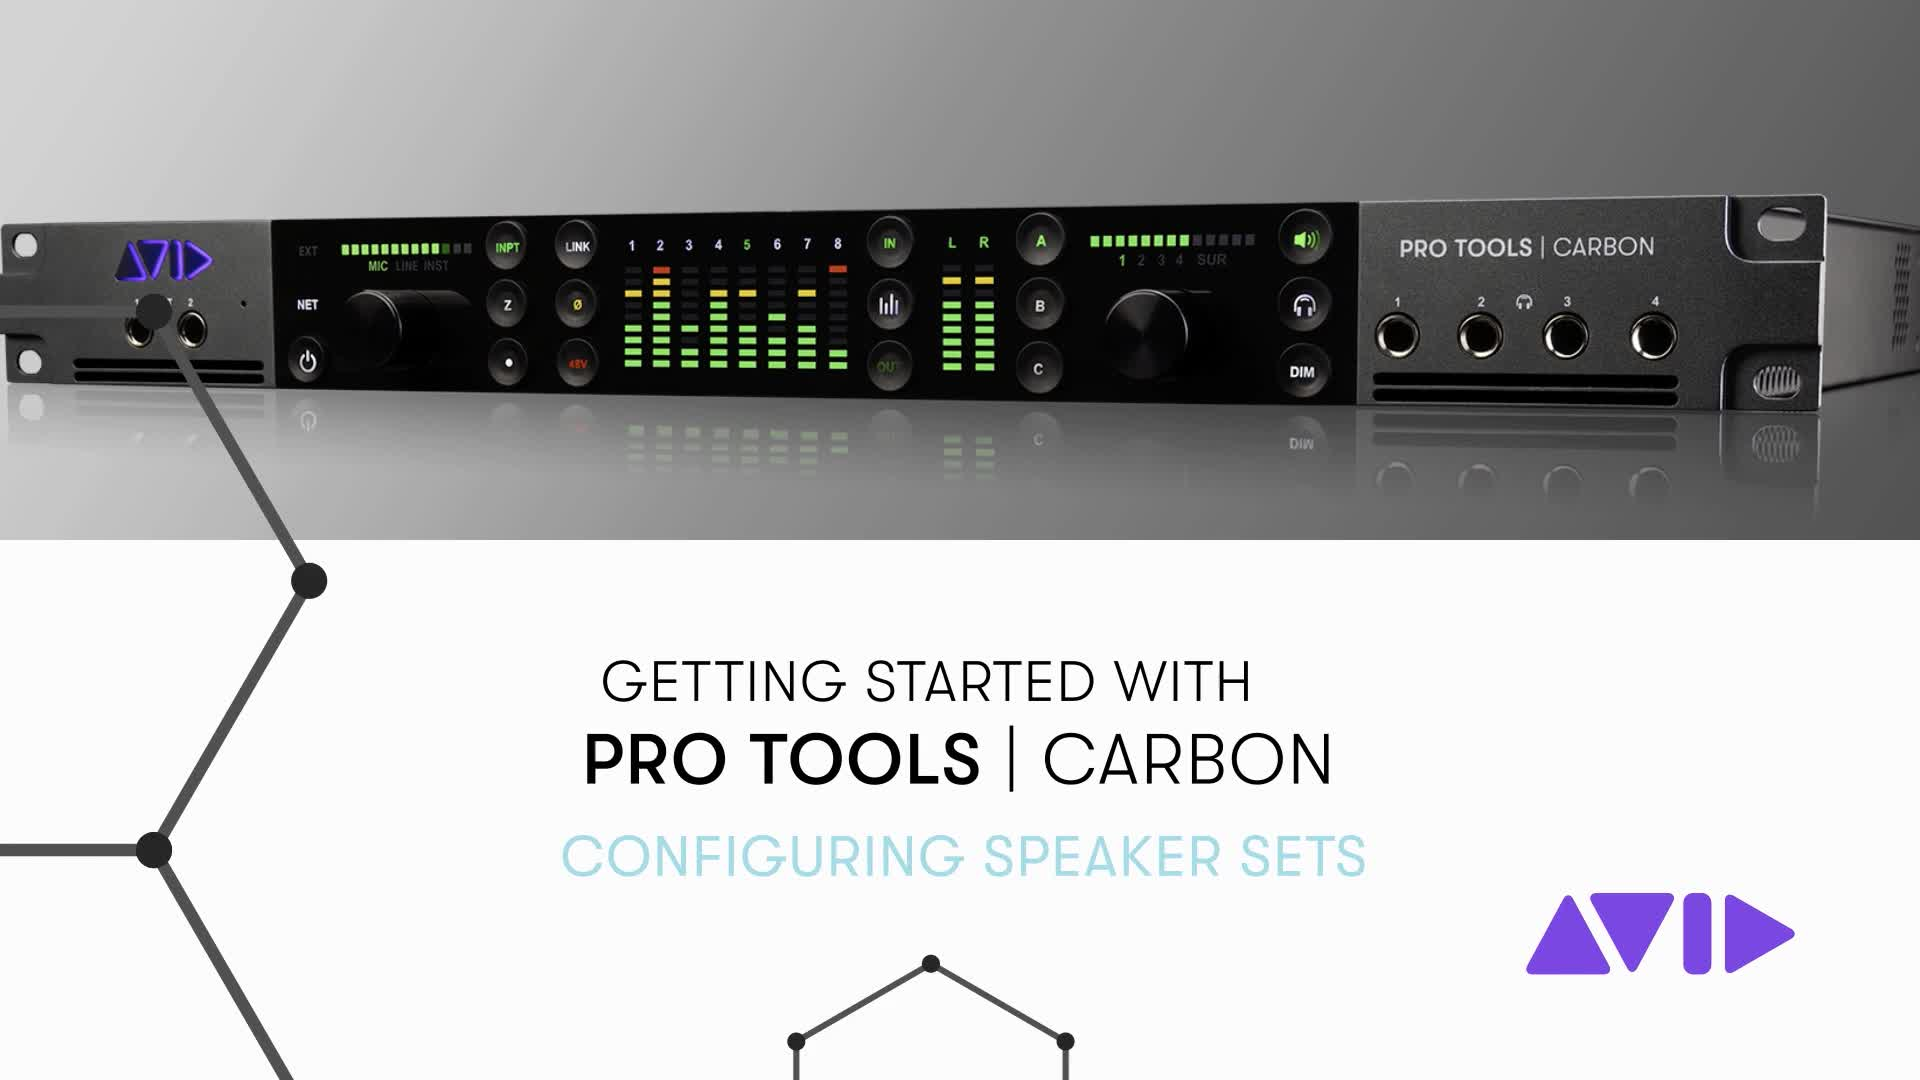 05 Pro Tools Carbon Getting Started - Configuring Speaker Sets